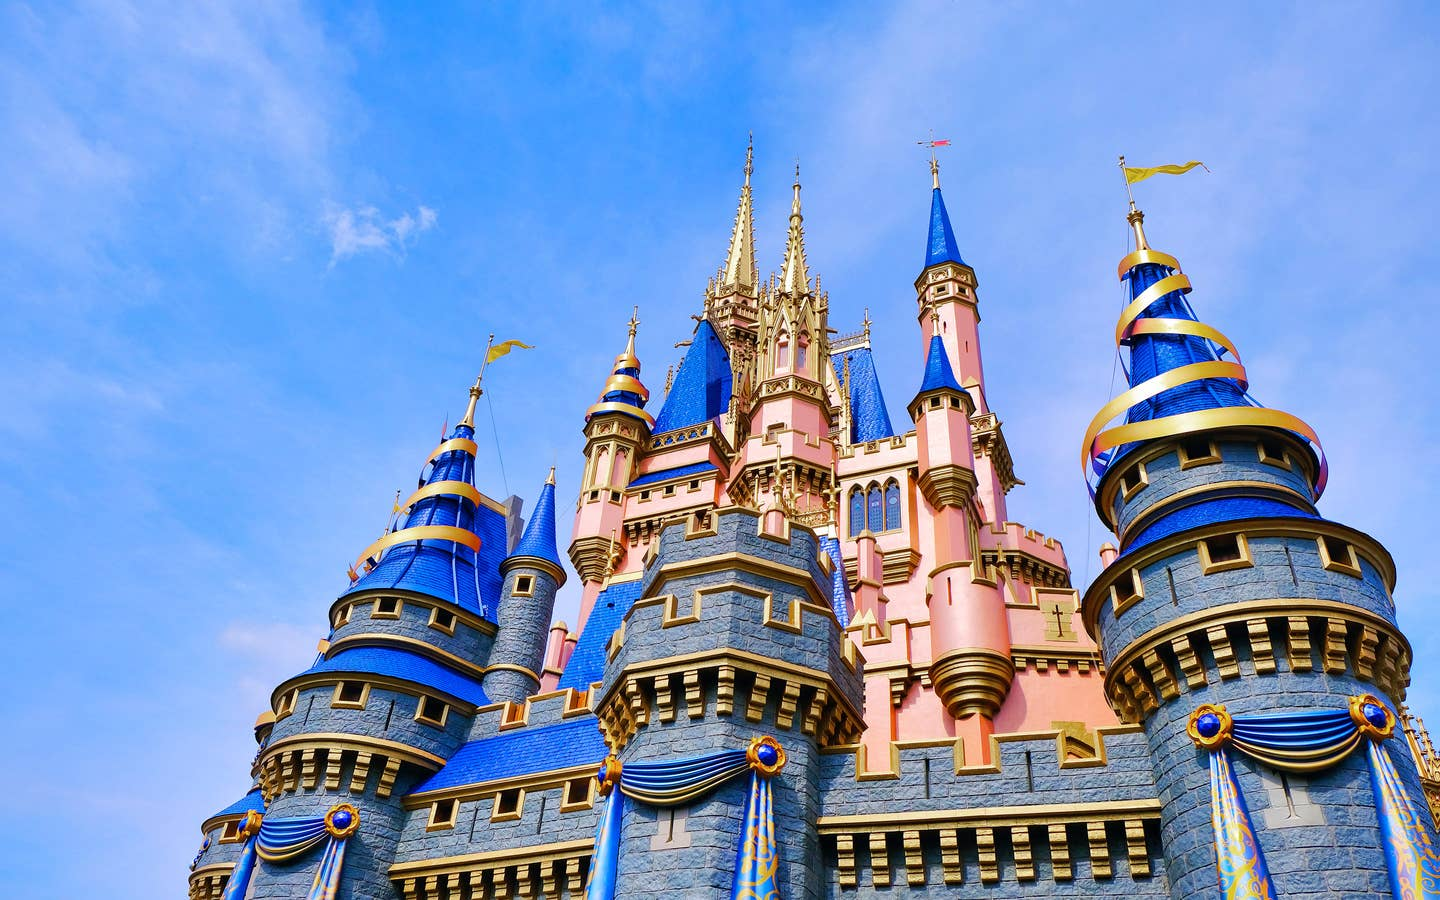 Cinderella's Castle at Magic Kingdom in Walt Disney World Resort is decorated in gold and blue ribbons for it's upcoming 50th Anniversary.